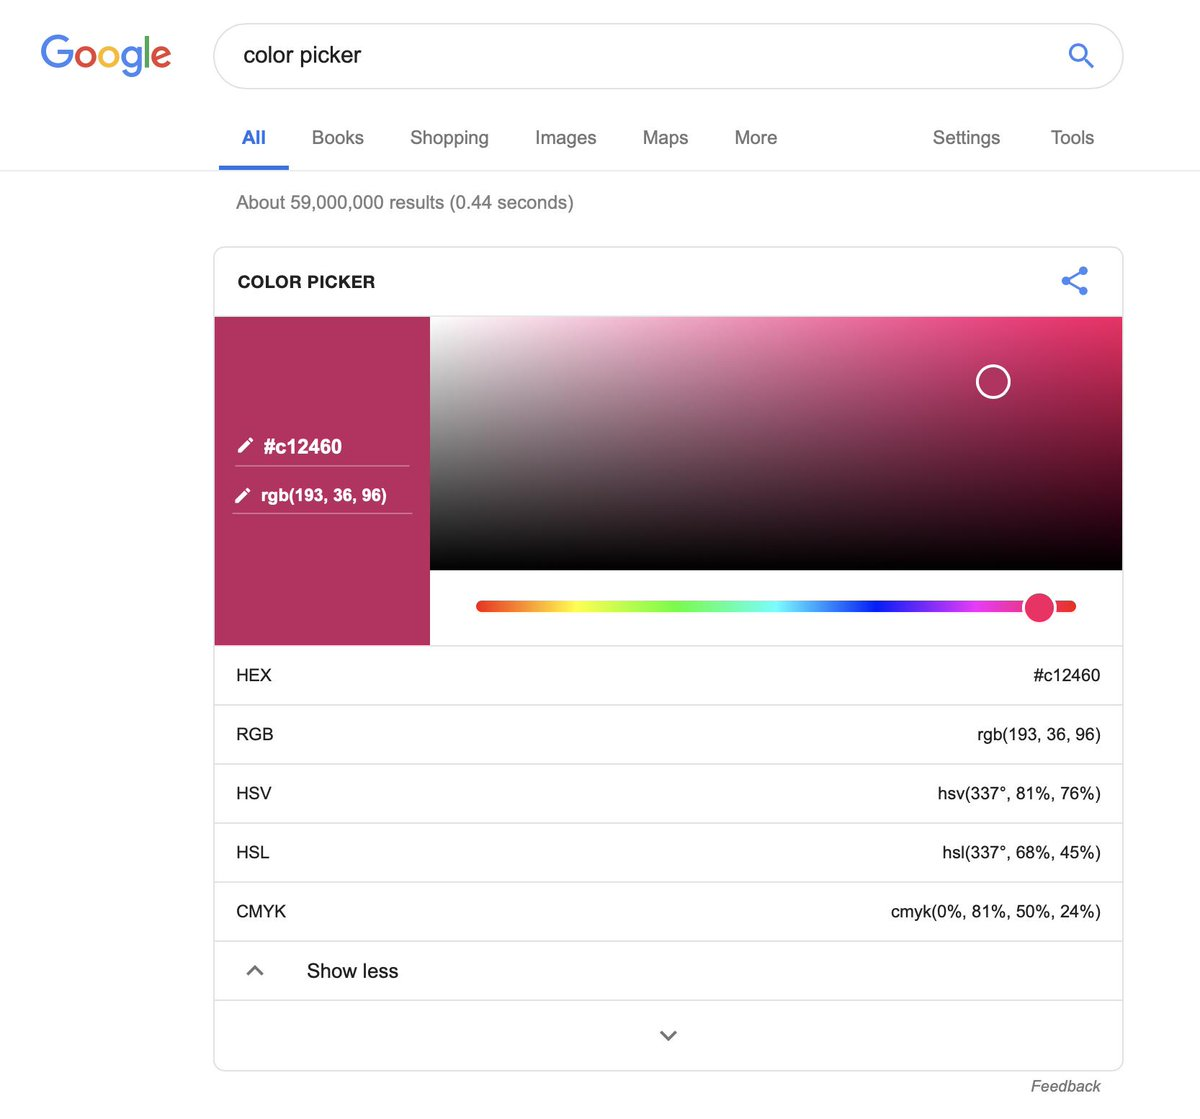 WHOA I DID NOT KNOW THIS WAS A THING???? Google 'color picker'. Coooooool 🤓💖